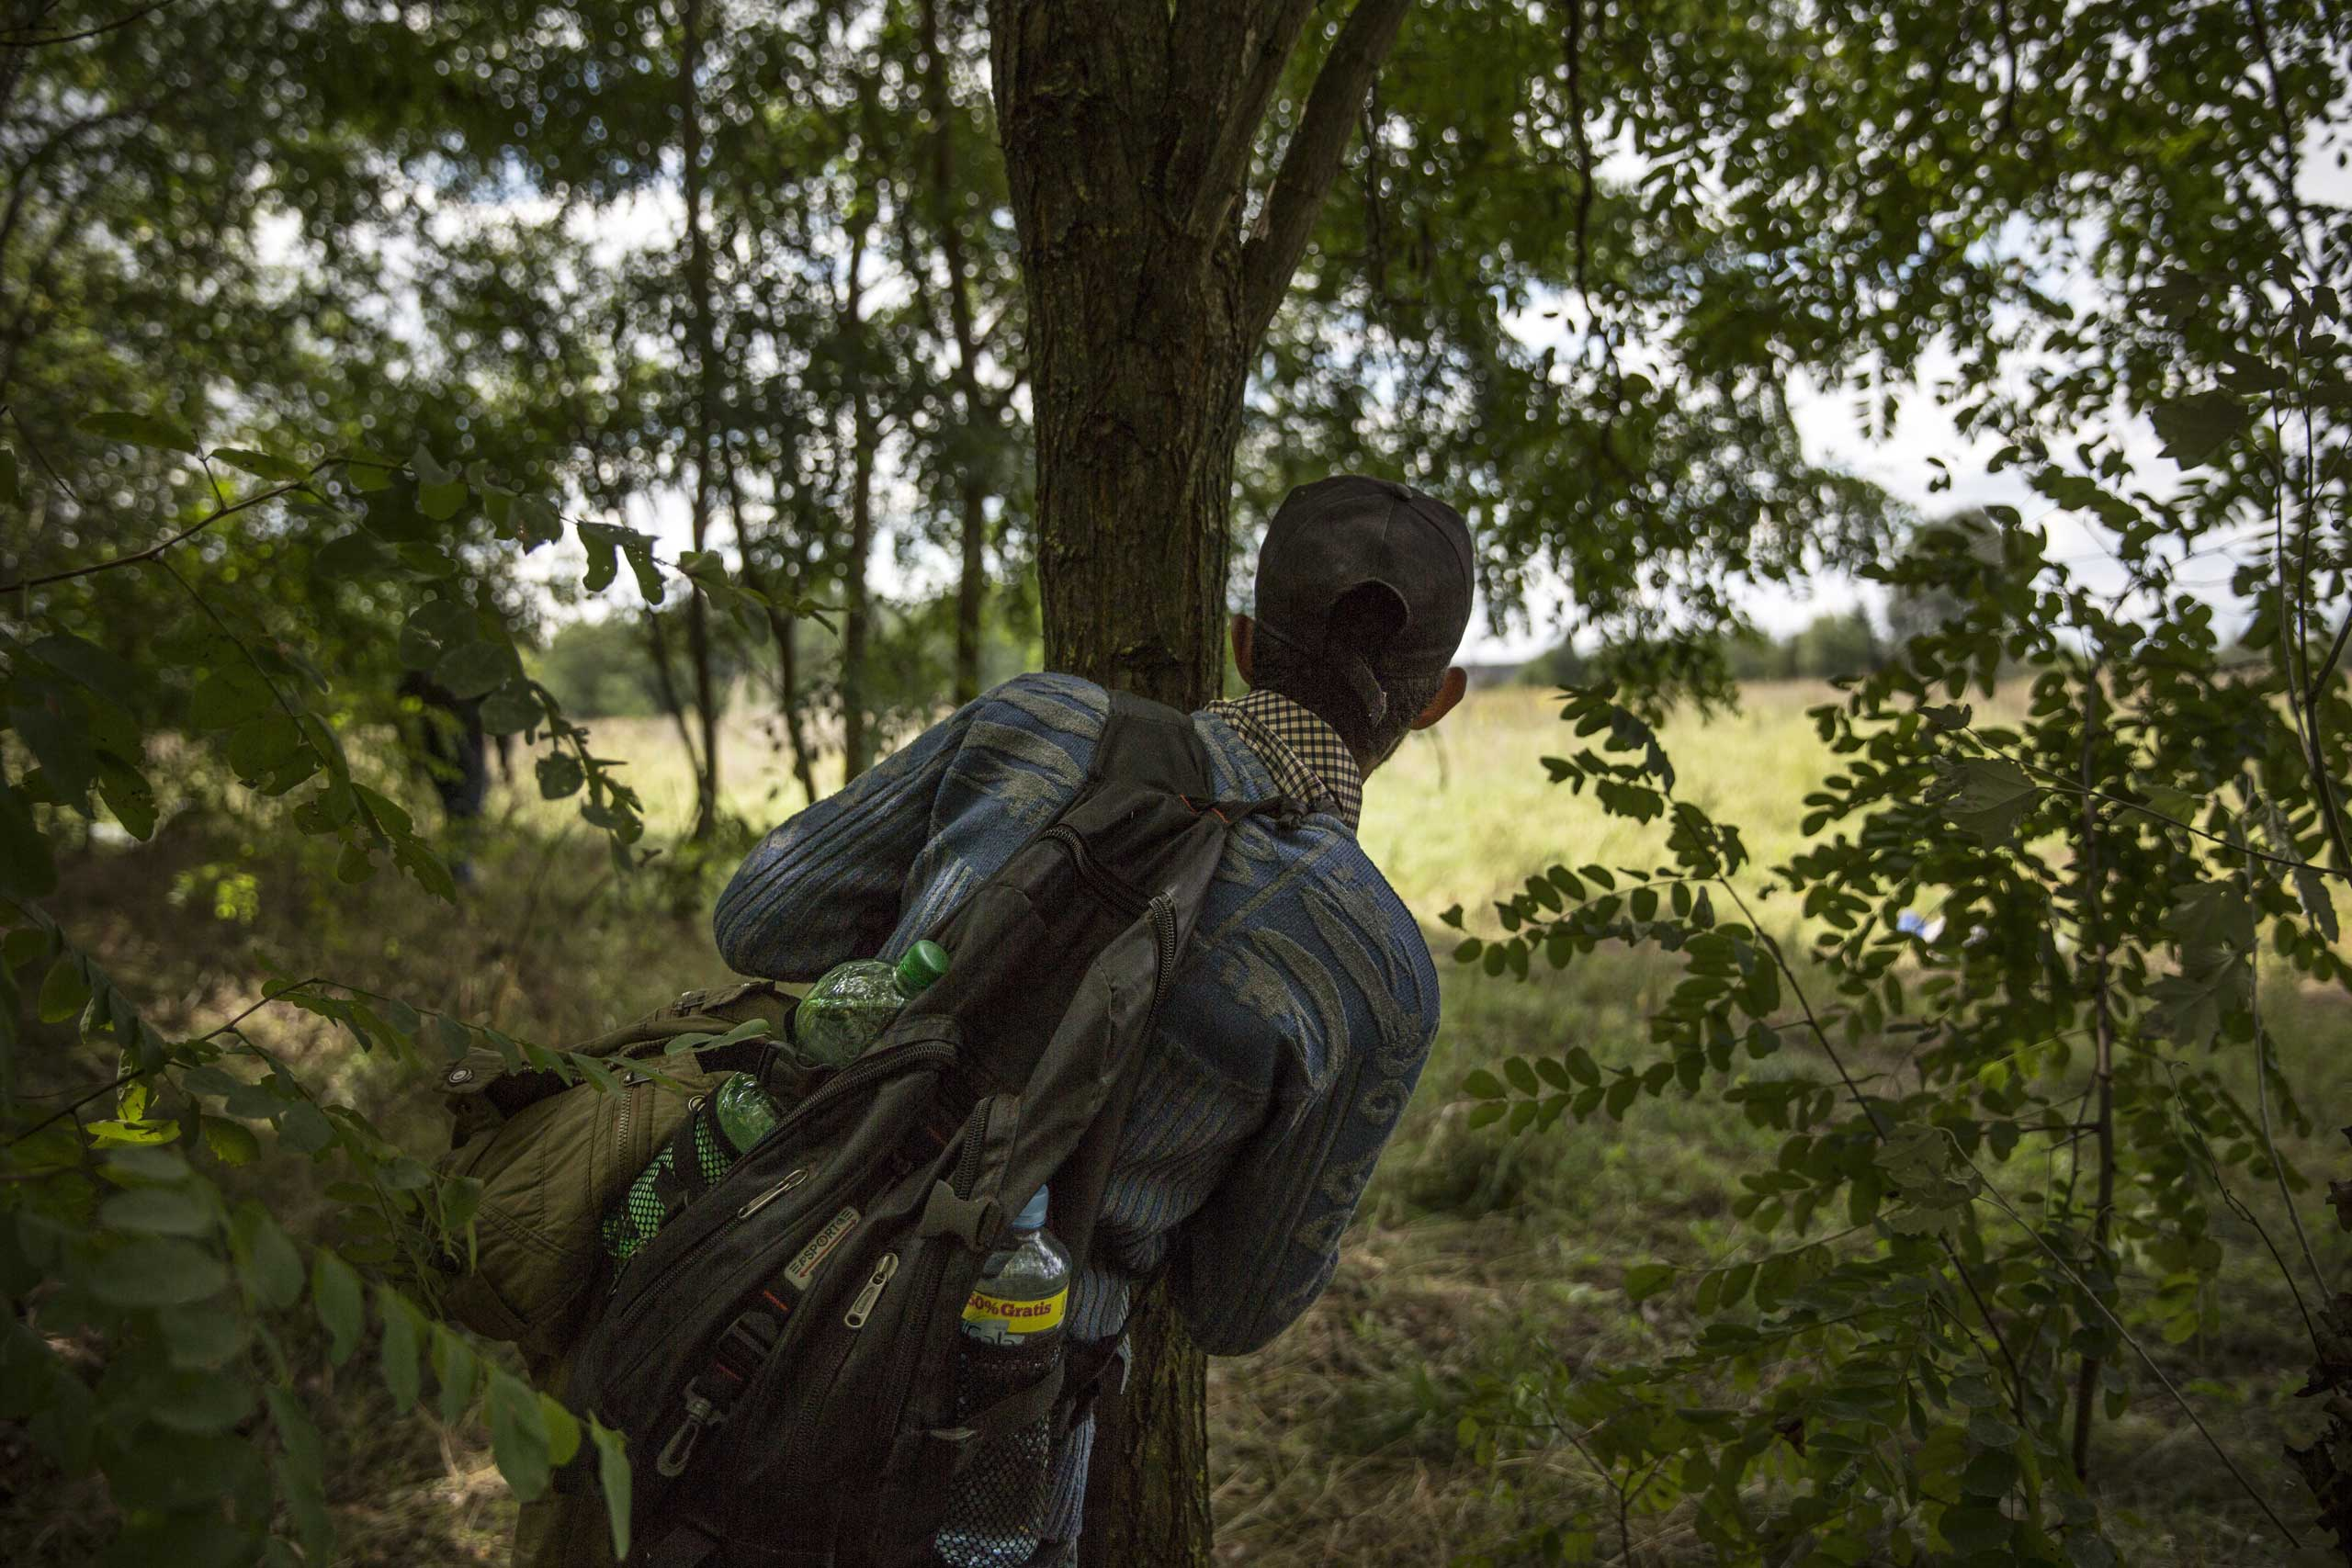 A young Syrian man from Damascus tries to evade the Hungarian police by sneaking through a forest close to the Serbian border in Morahalom, Hungary, on Sept. 8, 2015.